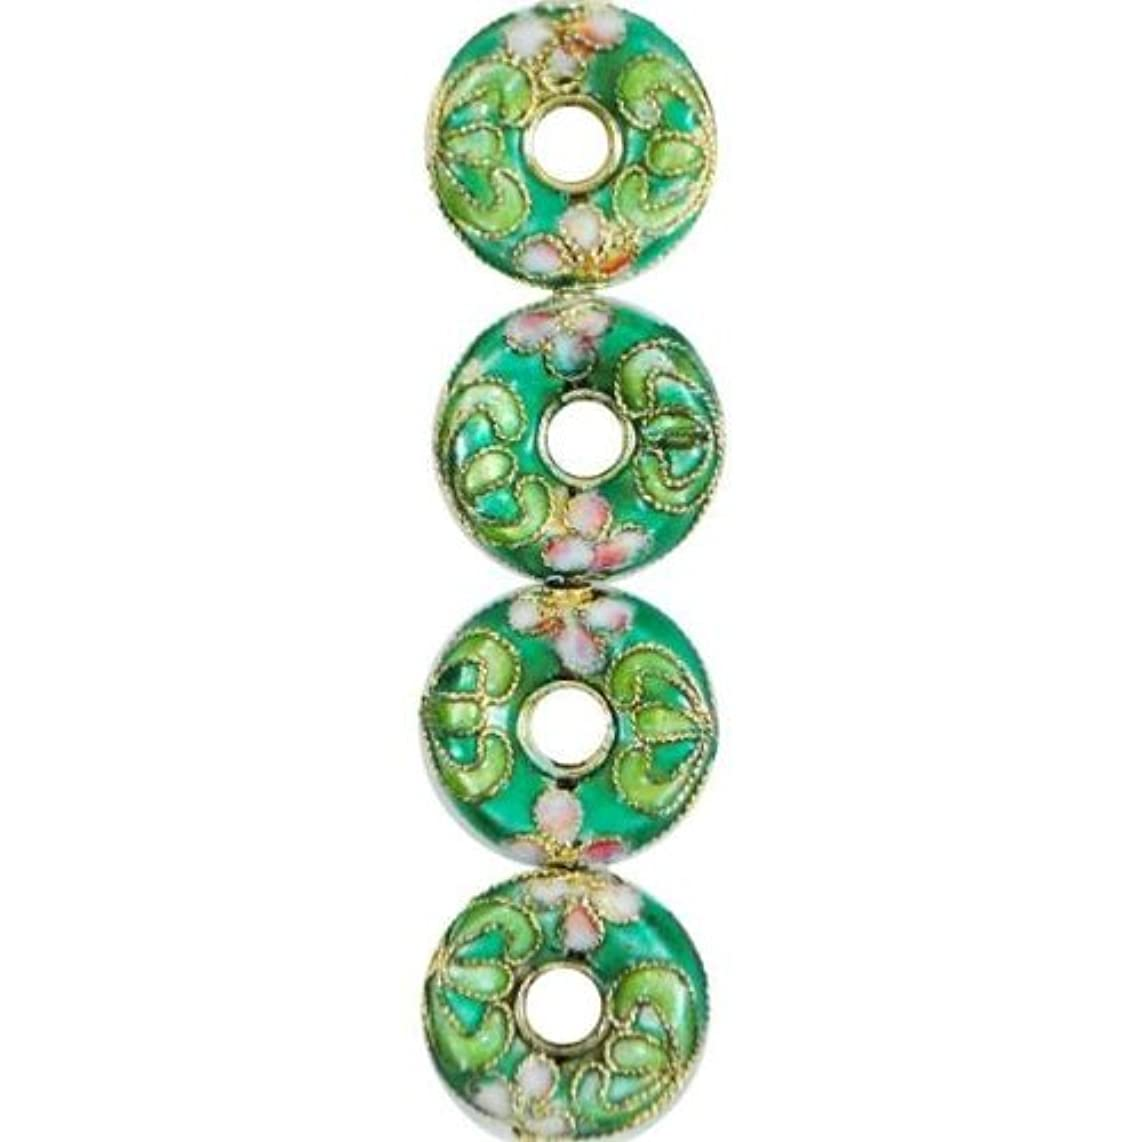 Expo BD51613 Cloisonne Donut Beads, 7-Pack